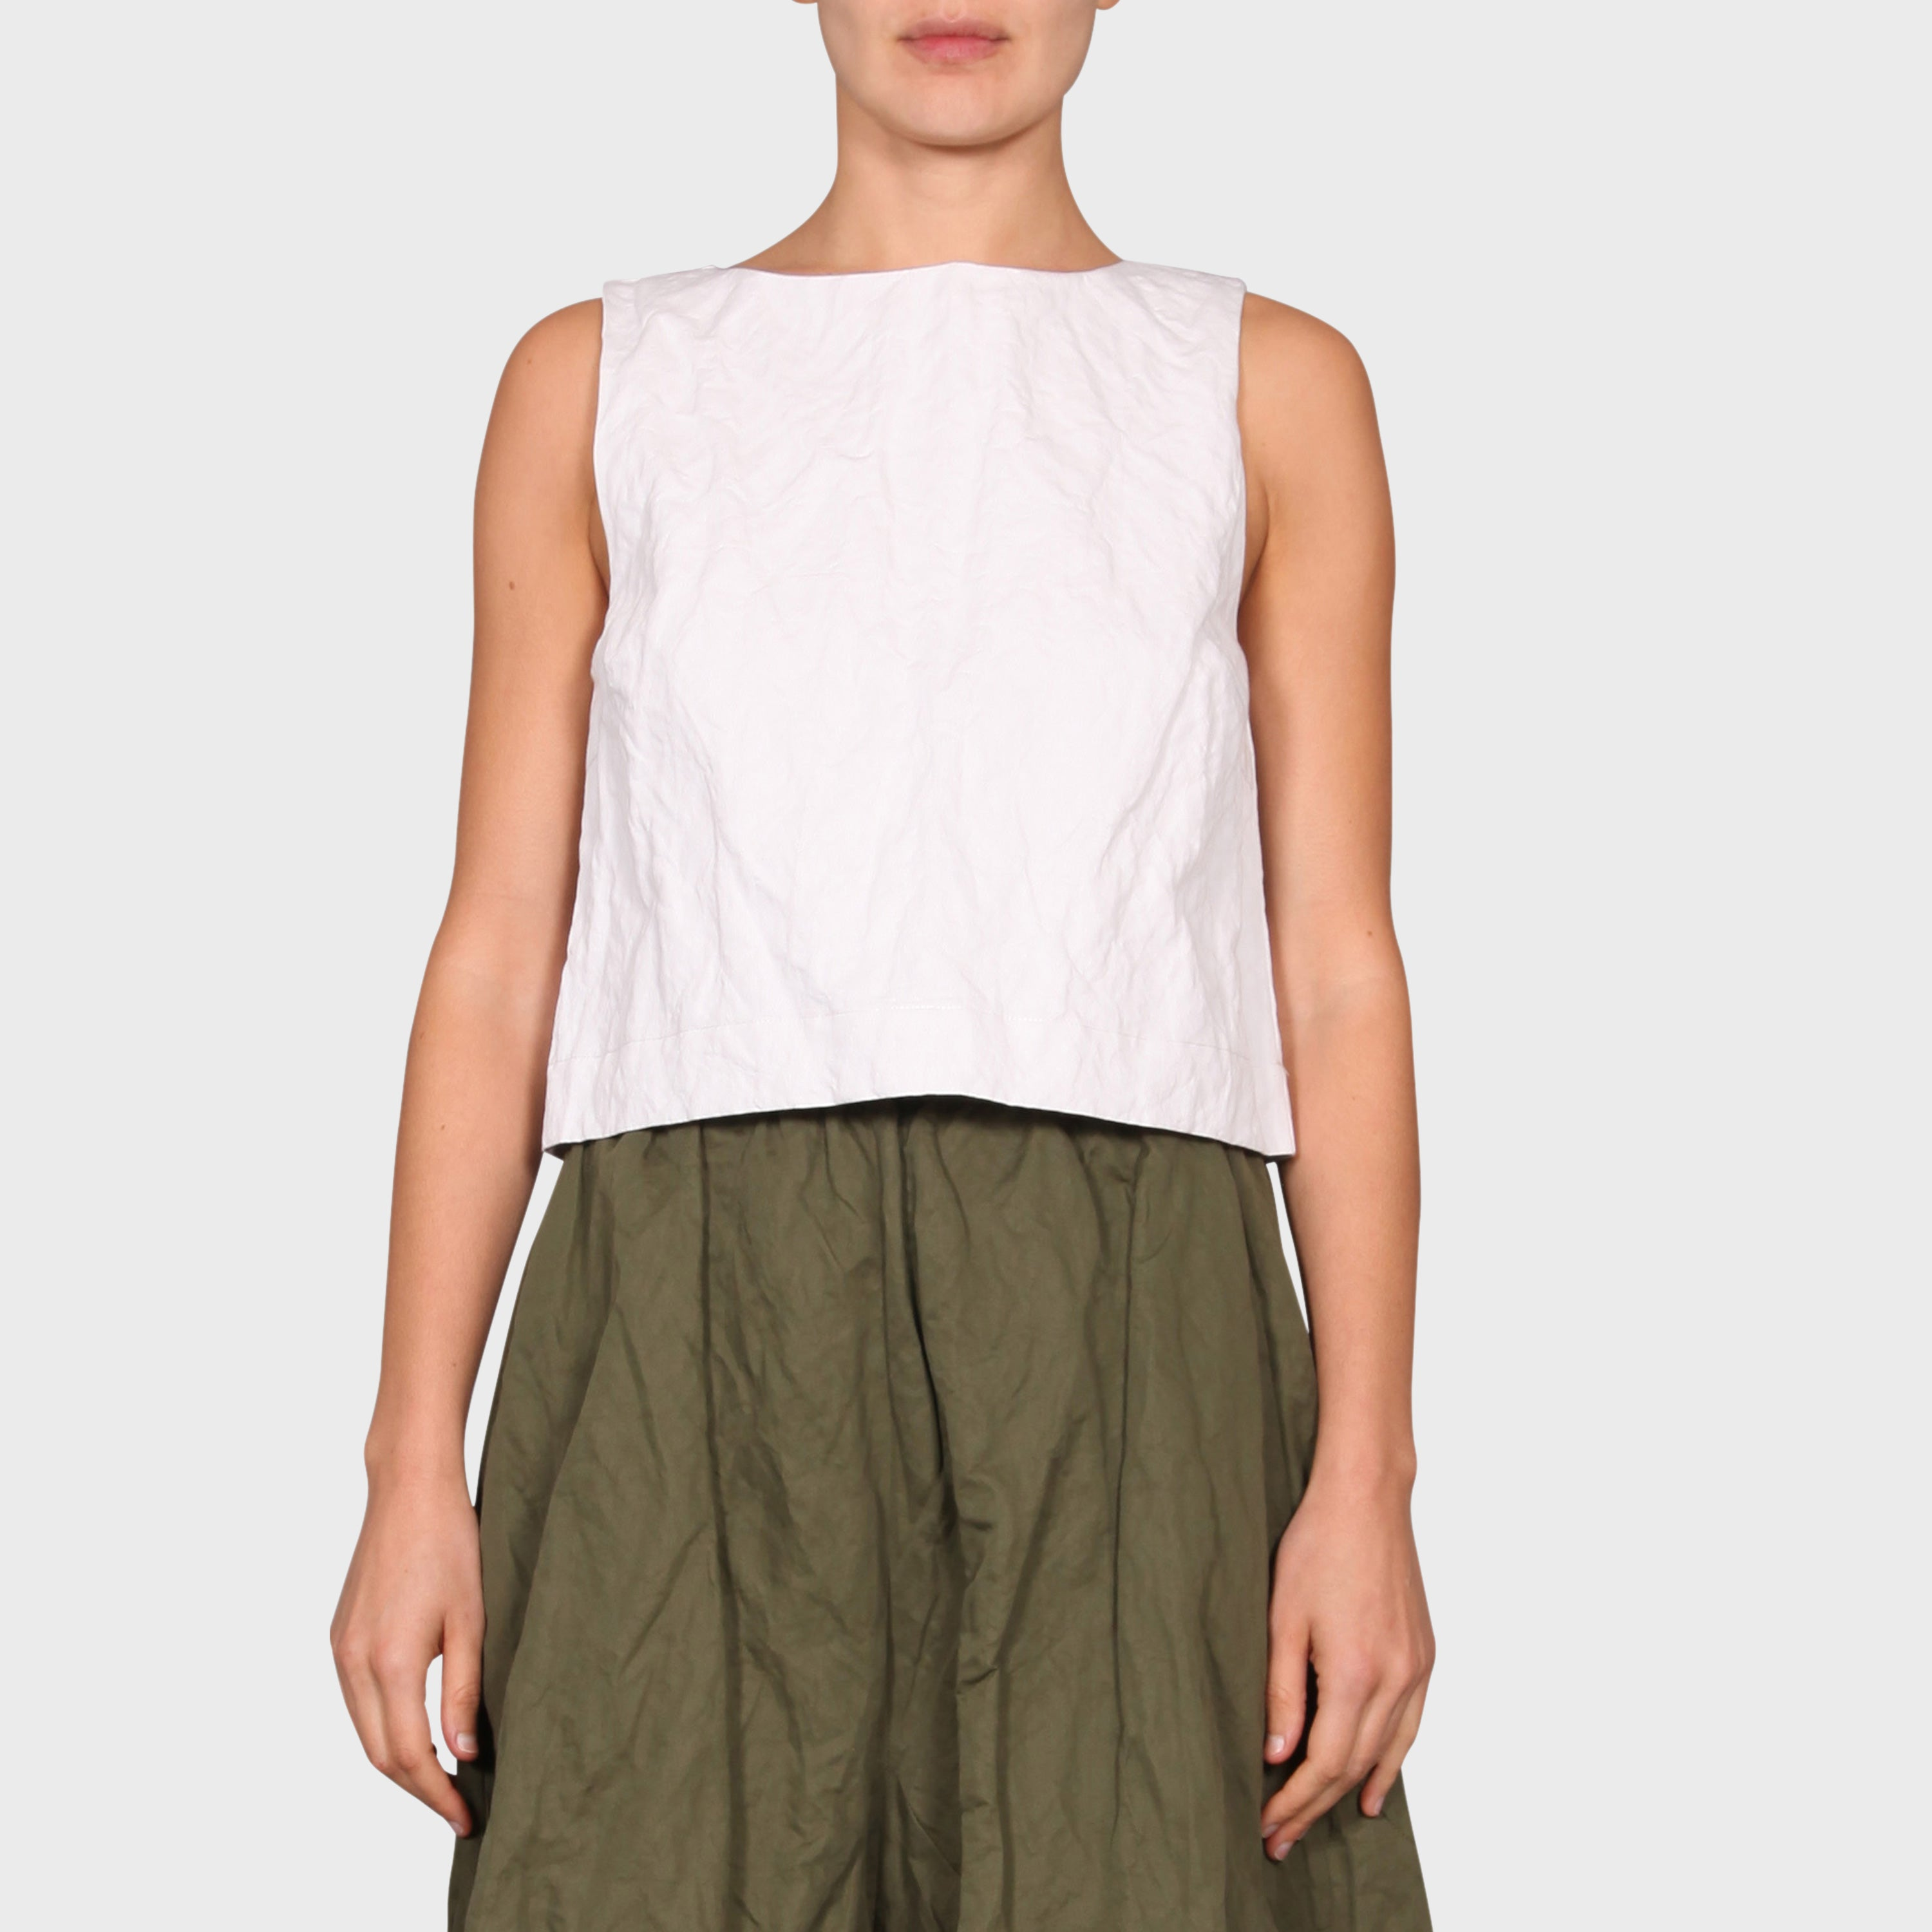 SAM TOP / WHITE